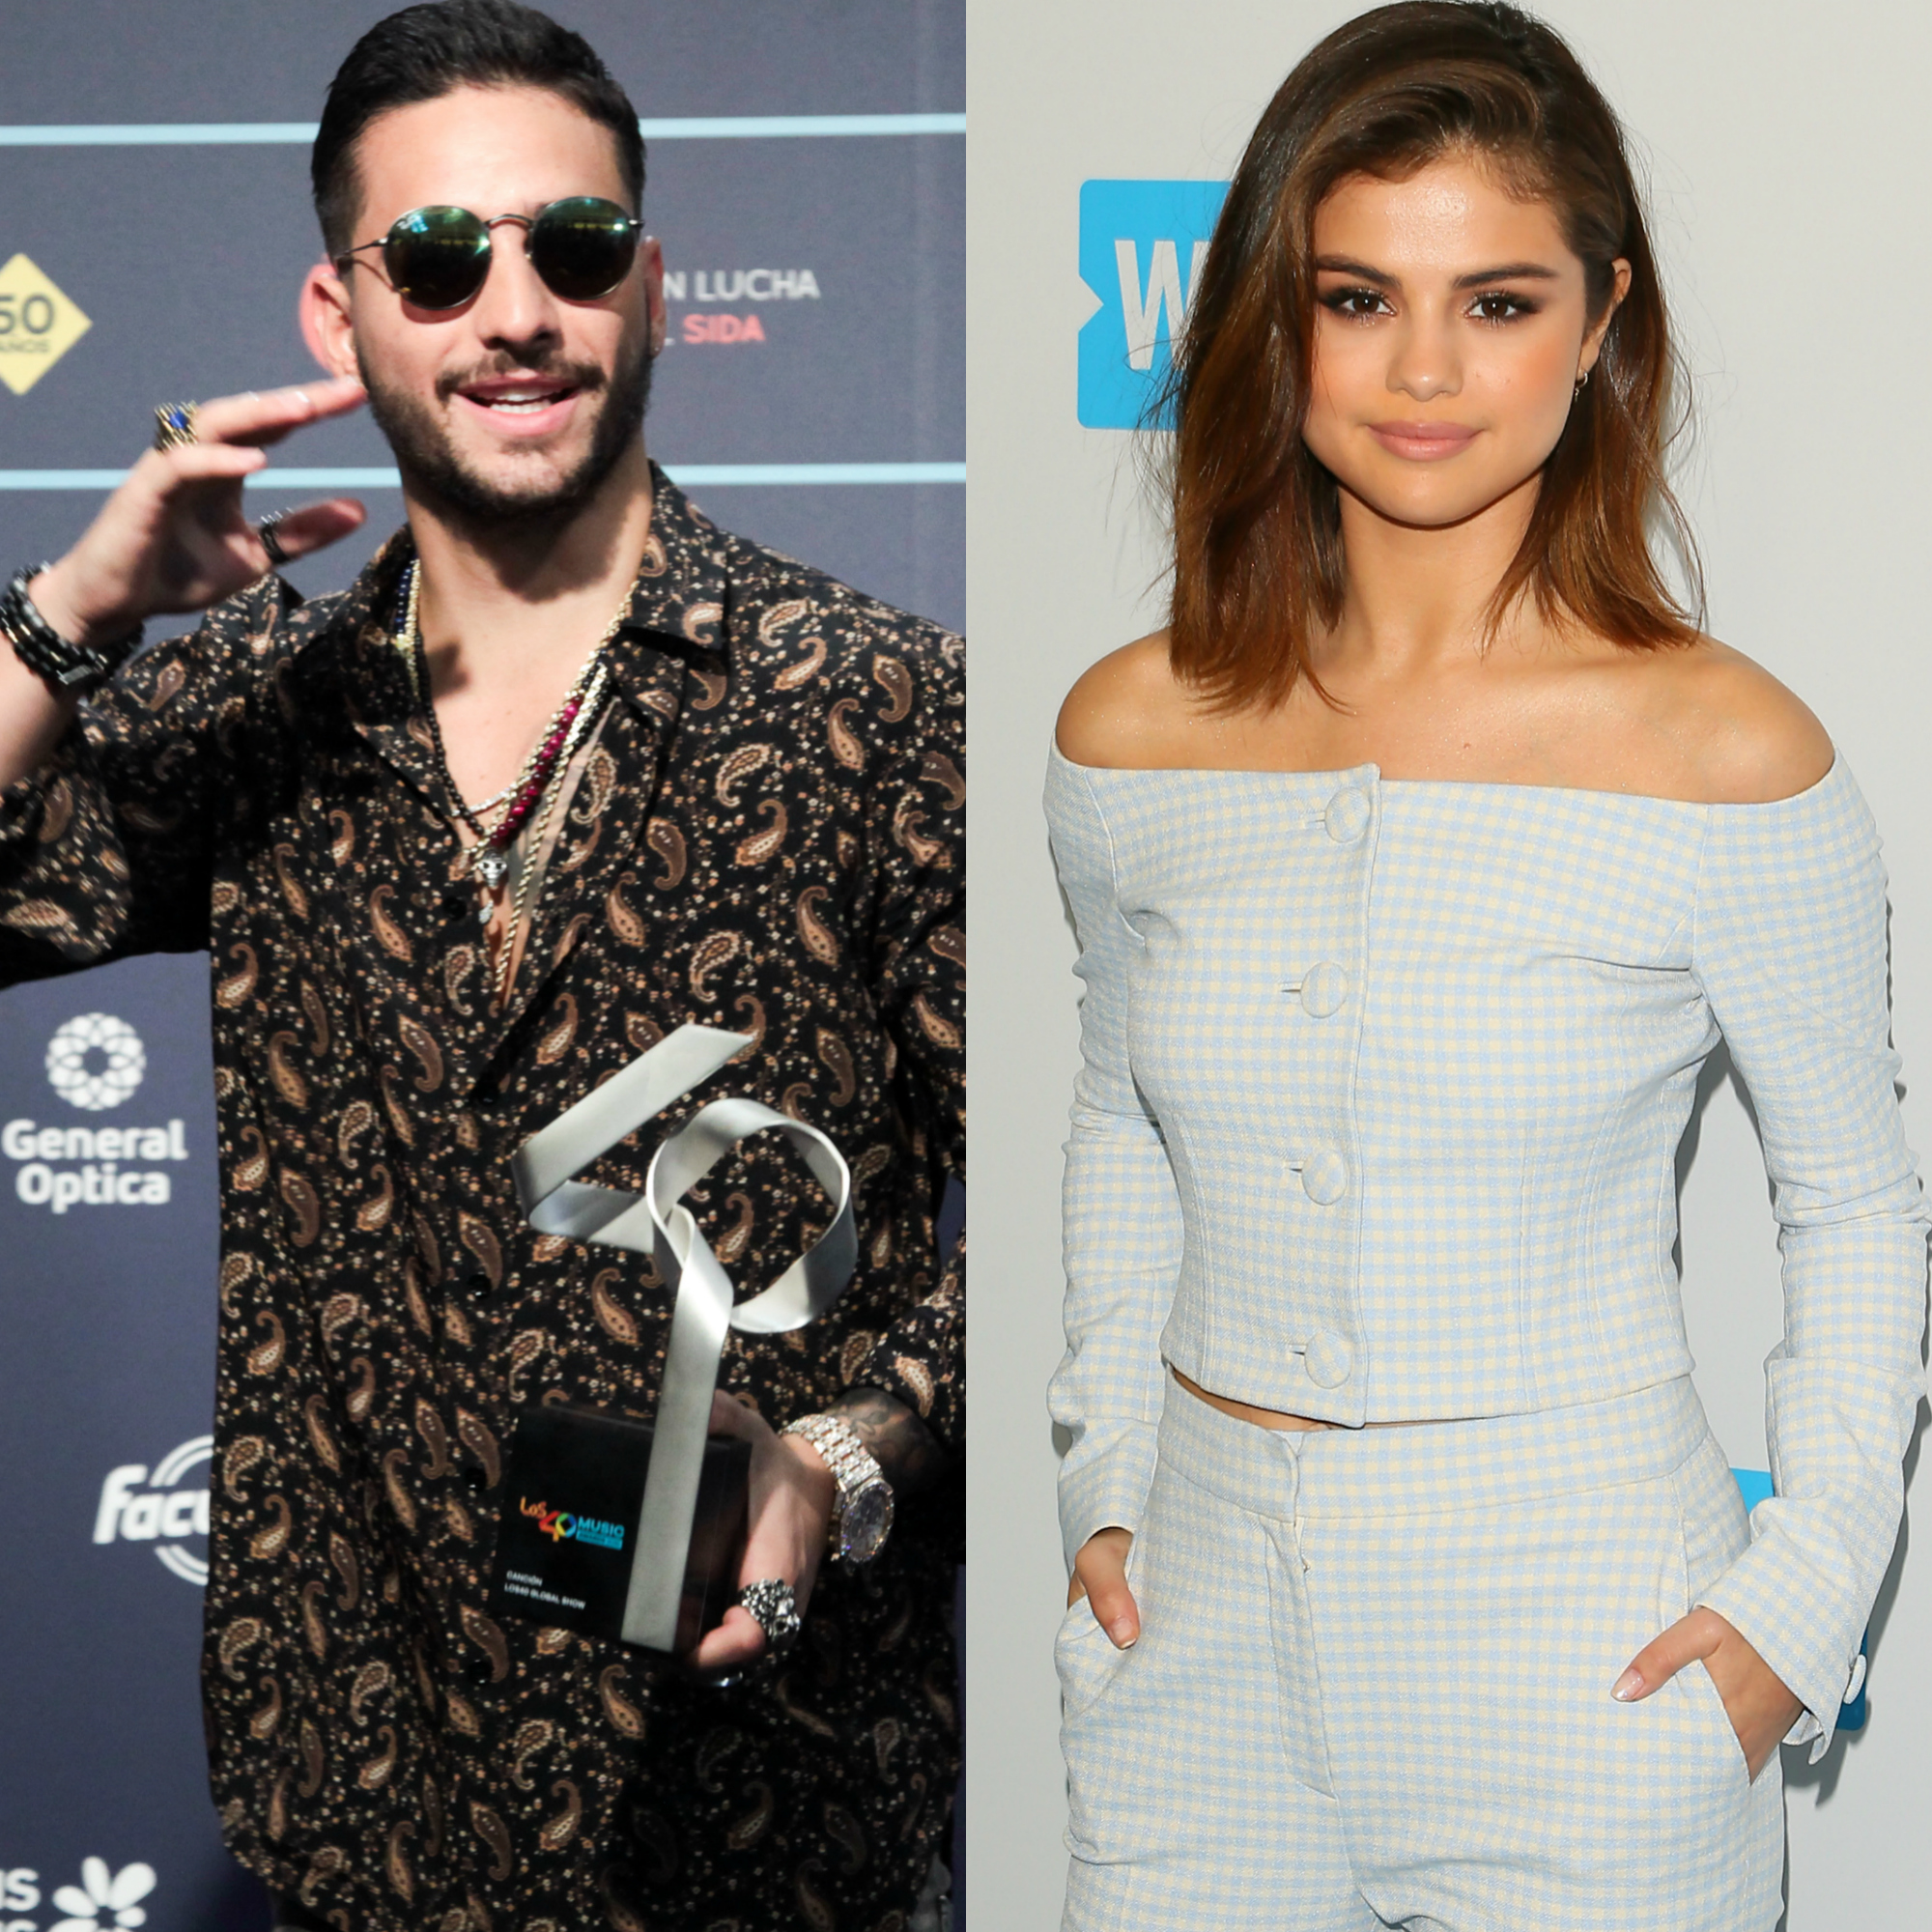 Maluma Reveals The Truth About His Relationship With Selena Gomez